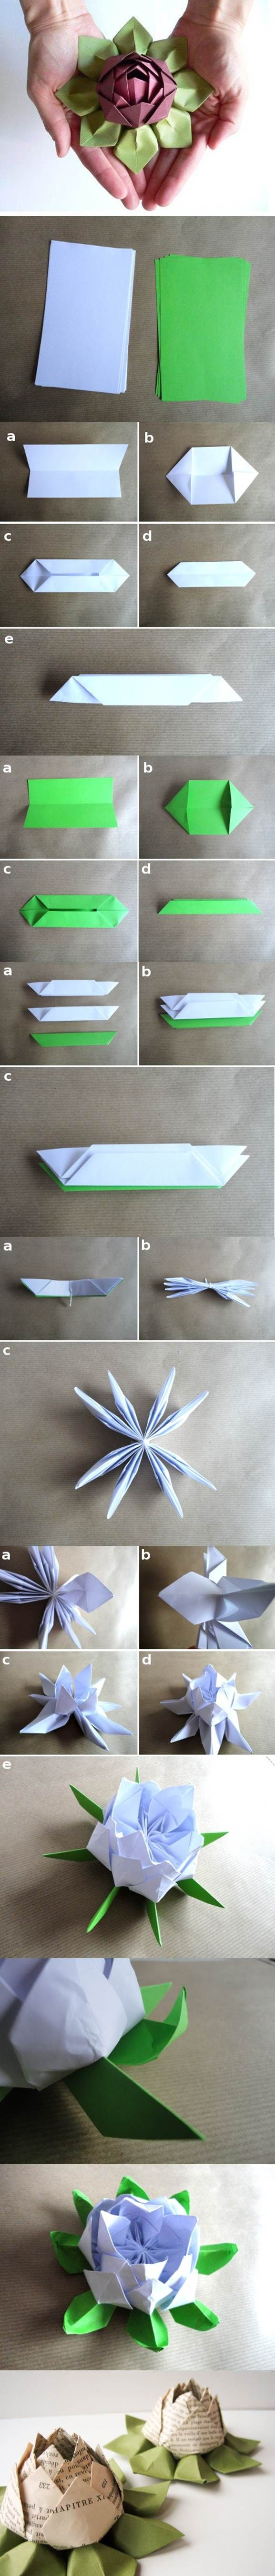 DIY Origami Lotus Flower | iCreativeIdeas.com Like Us on Facebook ==> https://www.facebook.com/icreativeideas